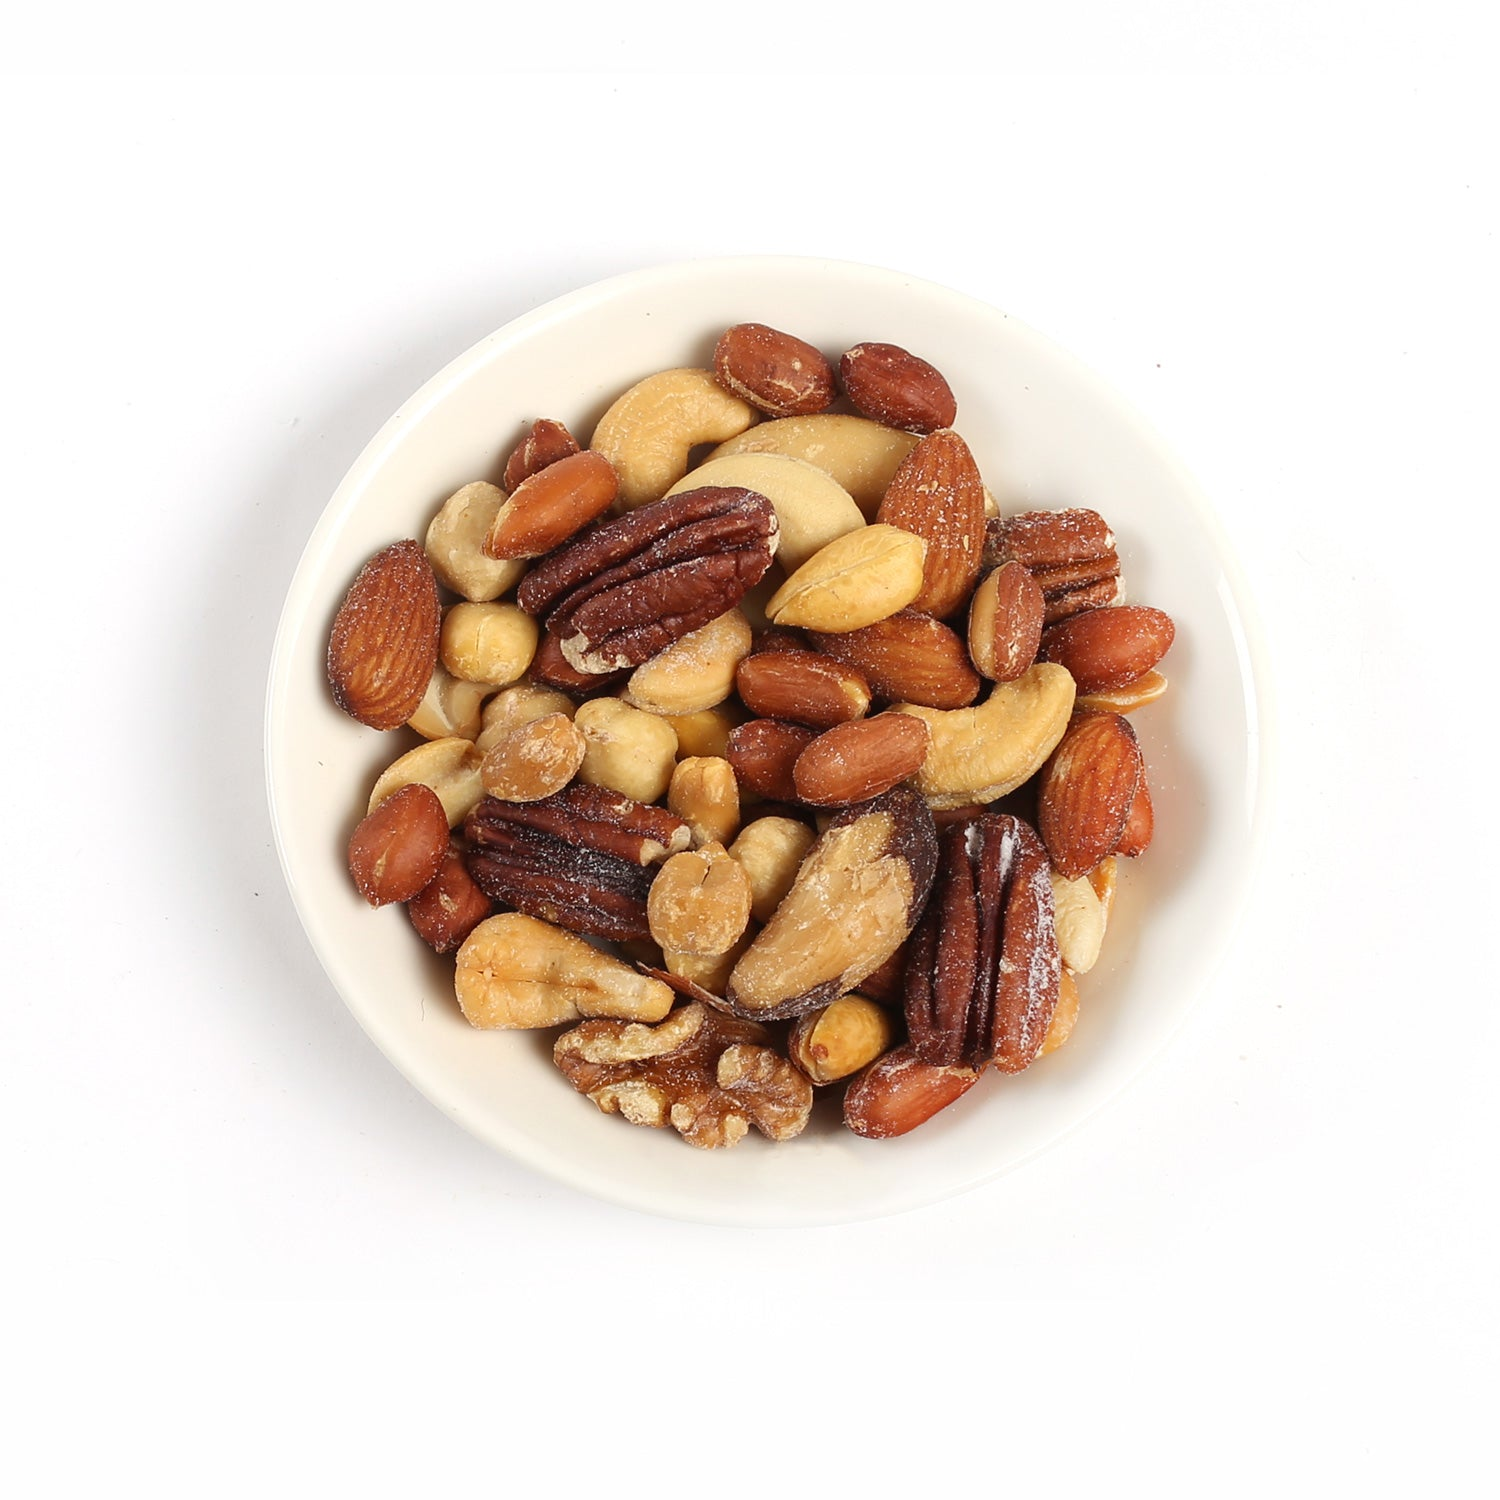 Product photo of popular nut mix